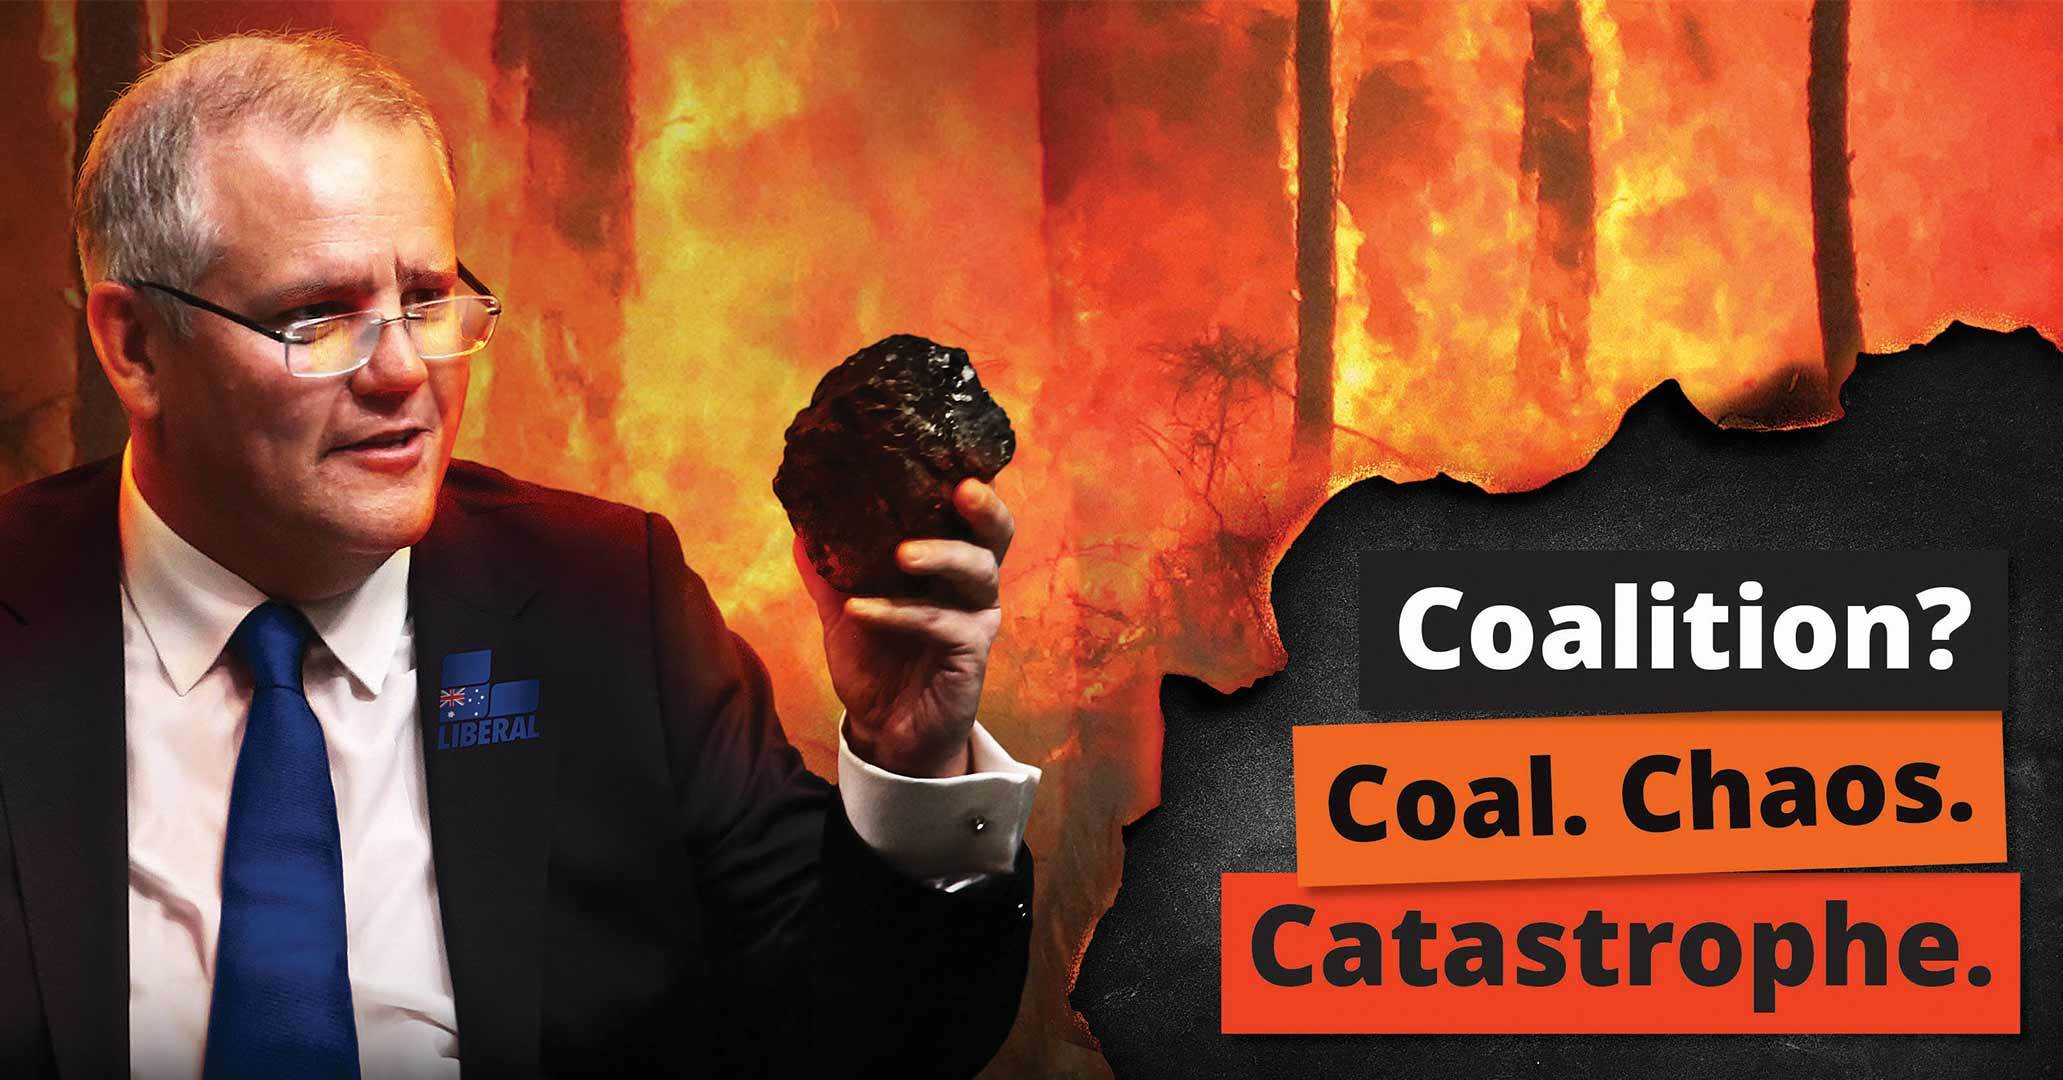 Picture of Scott Morrison standing in front of a bushfire holding a lump of coal. Words: Coalition. Coal. Chaos. Catastrophe.